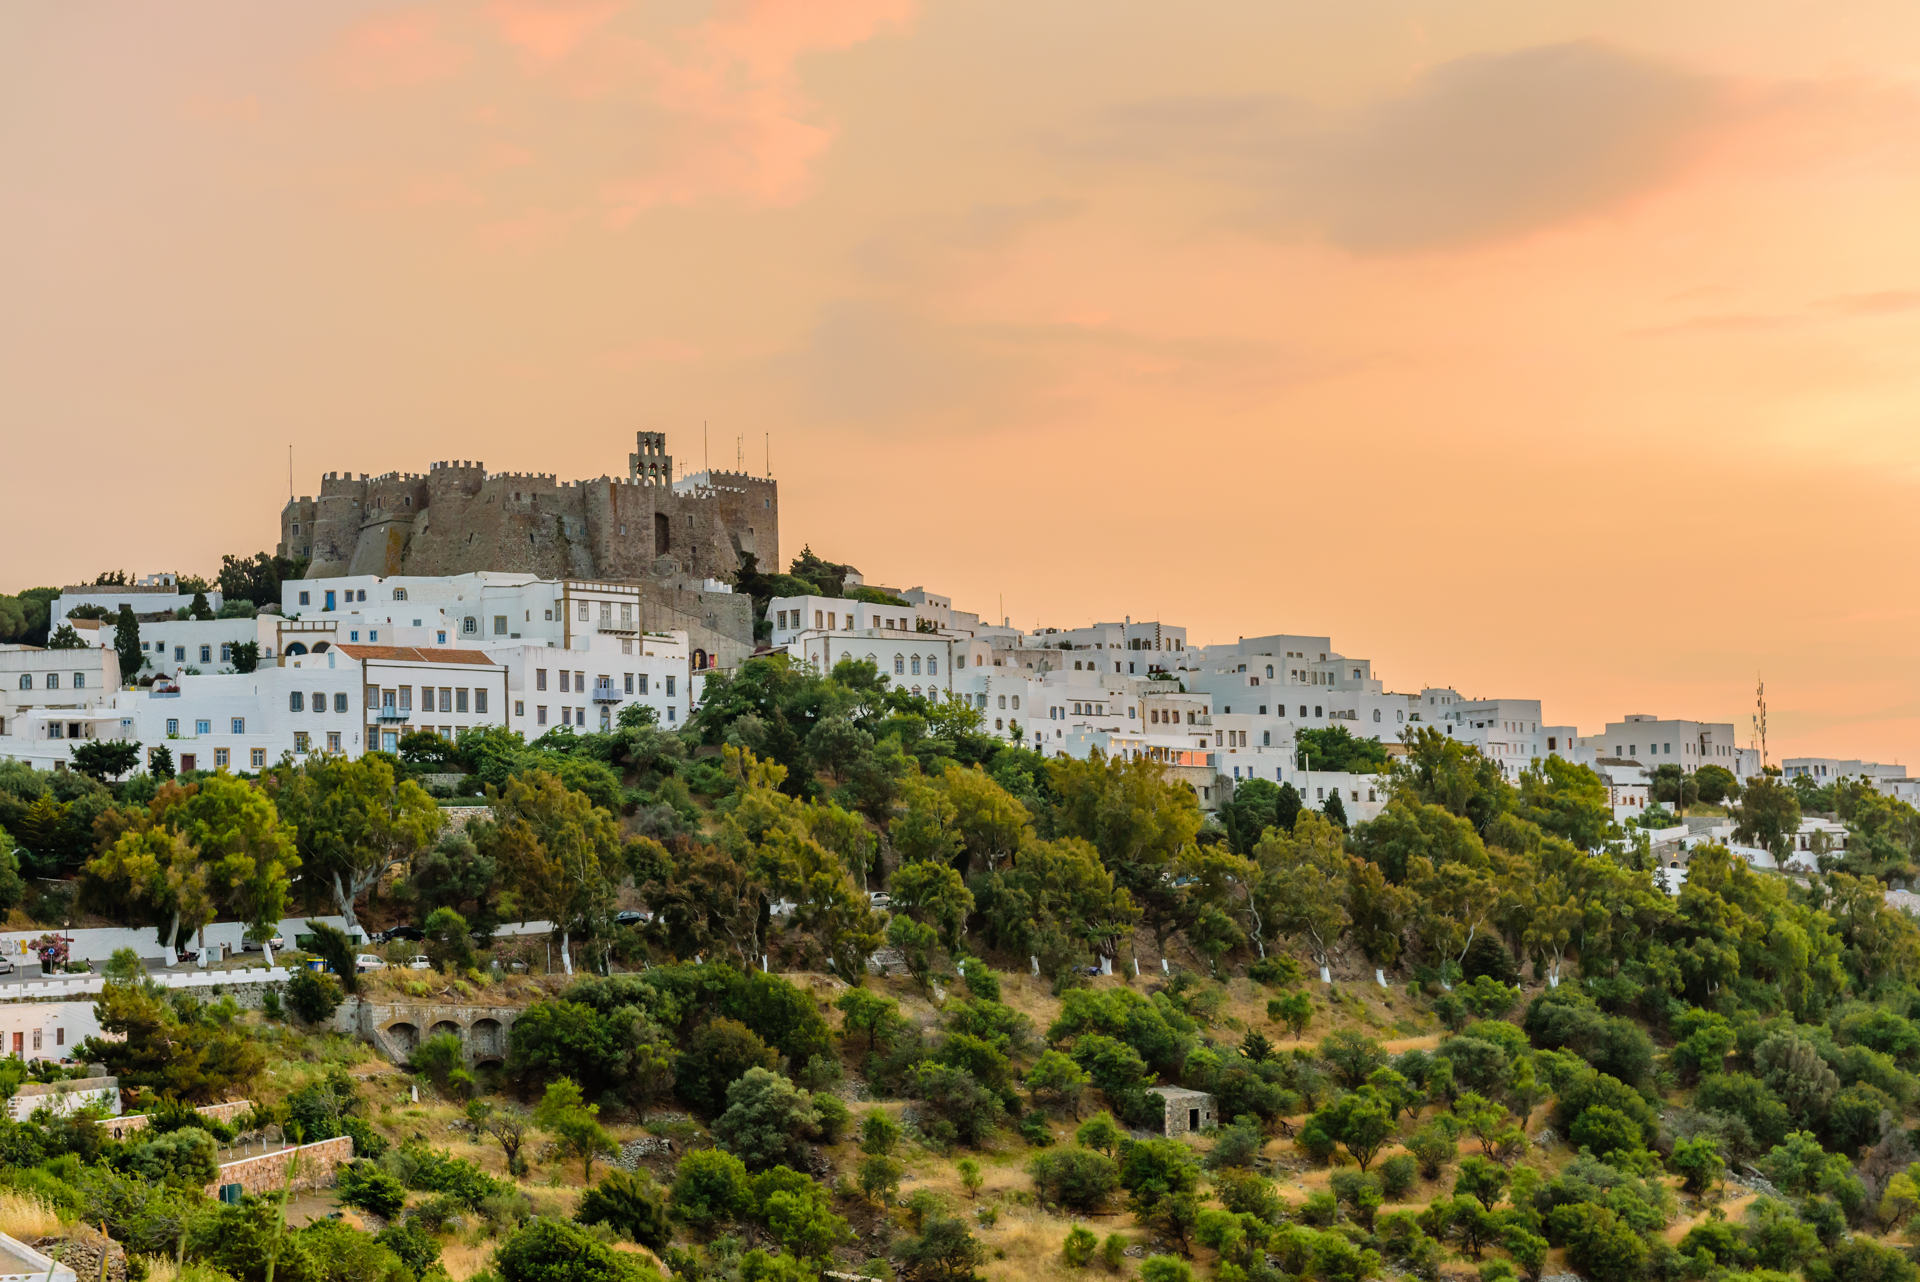 View of Monastery of st. John in Patmos island, Dodecanese, Greece